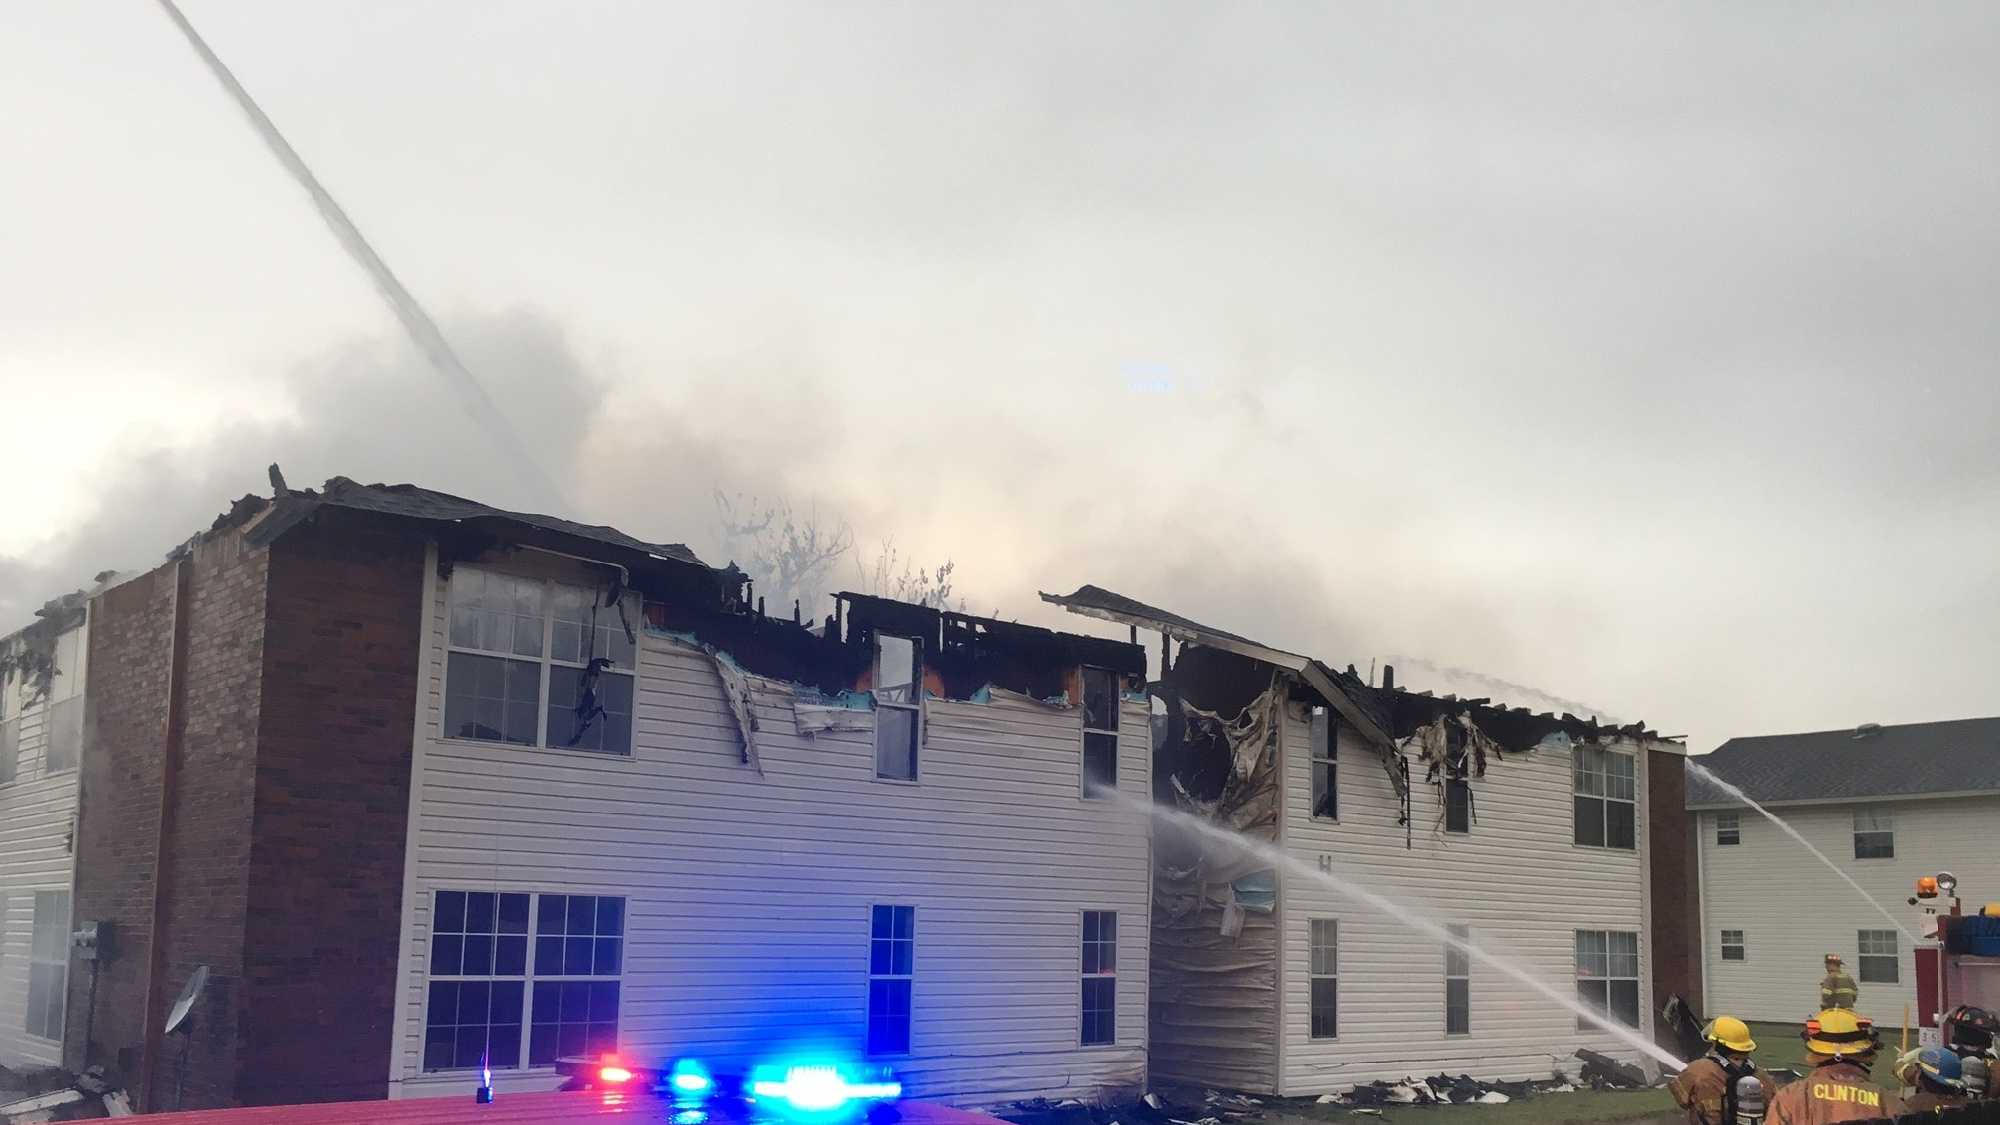 A fire at an apartment complex in Elk City may have been caused by lightning strike, officials said.